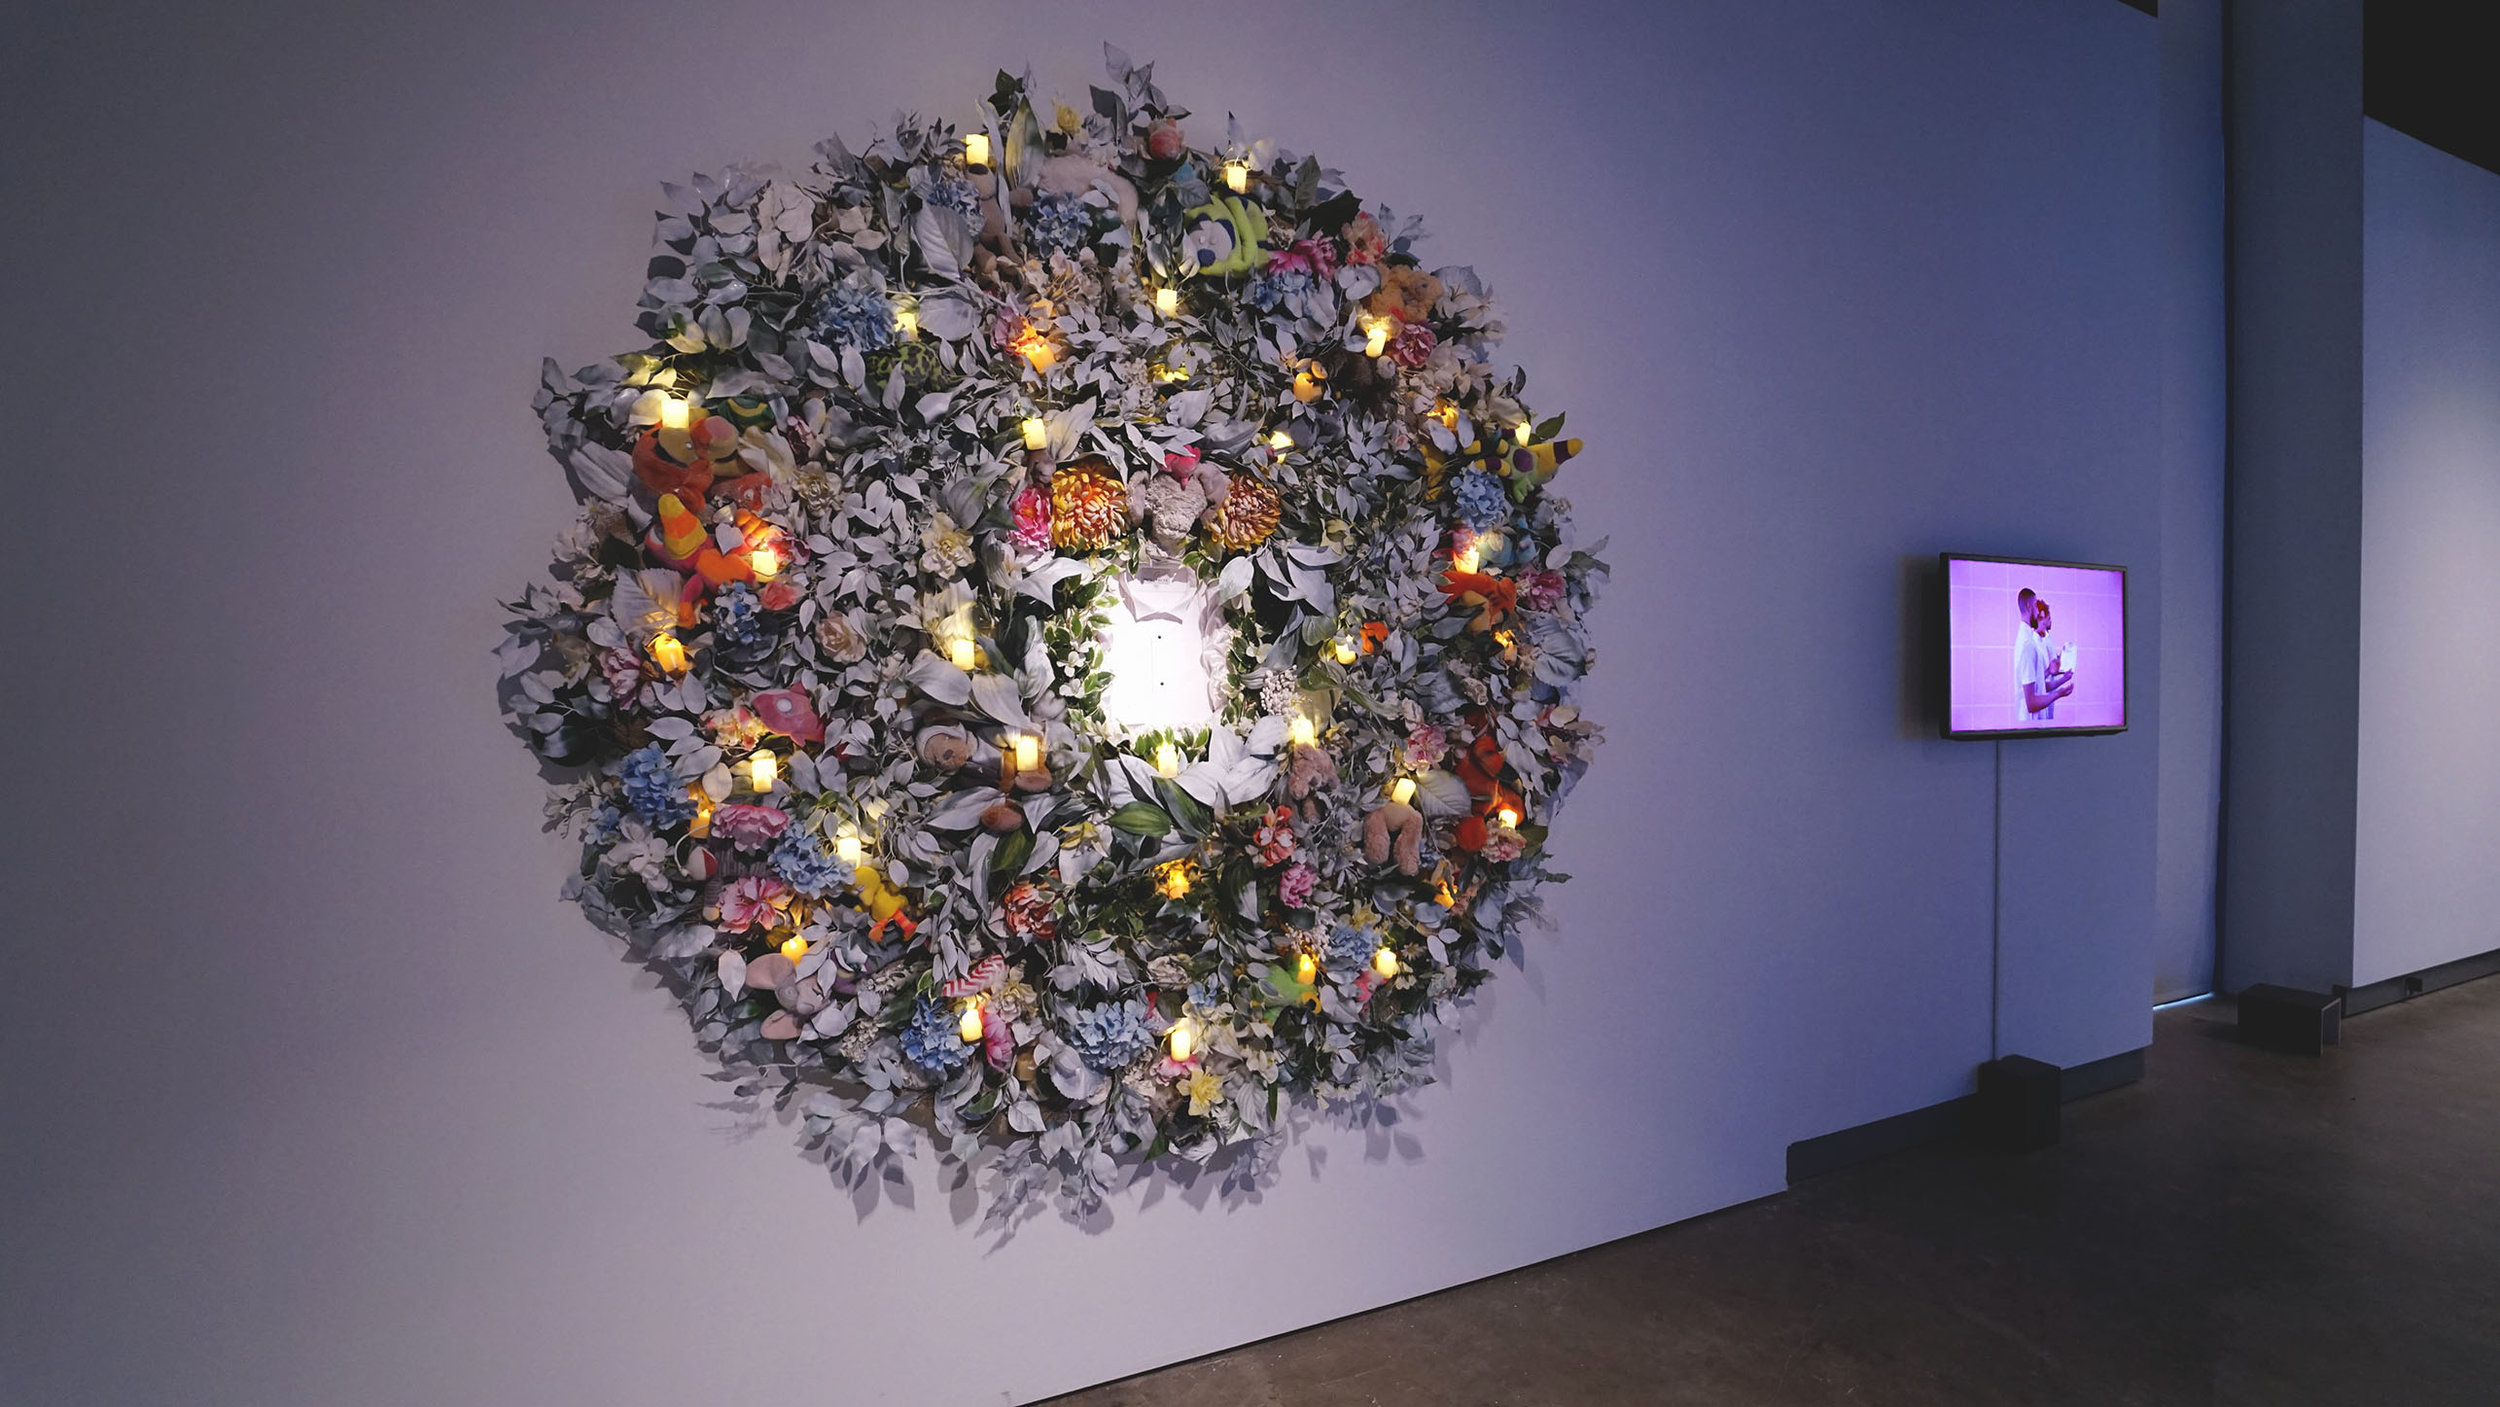 thesis show_Install view_wreath.jpg